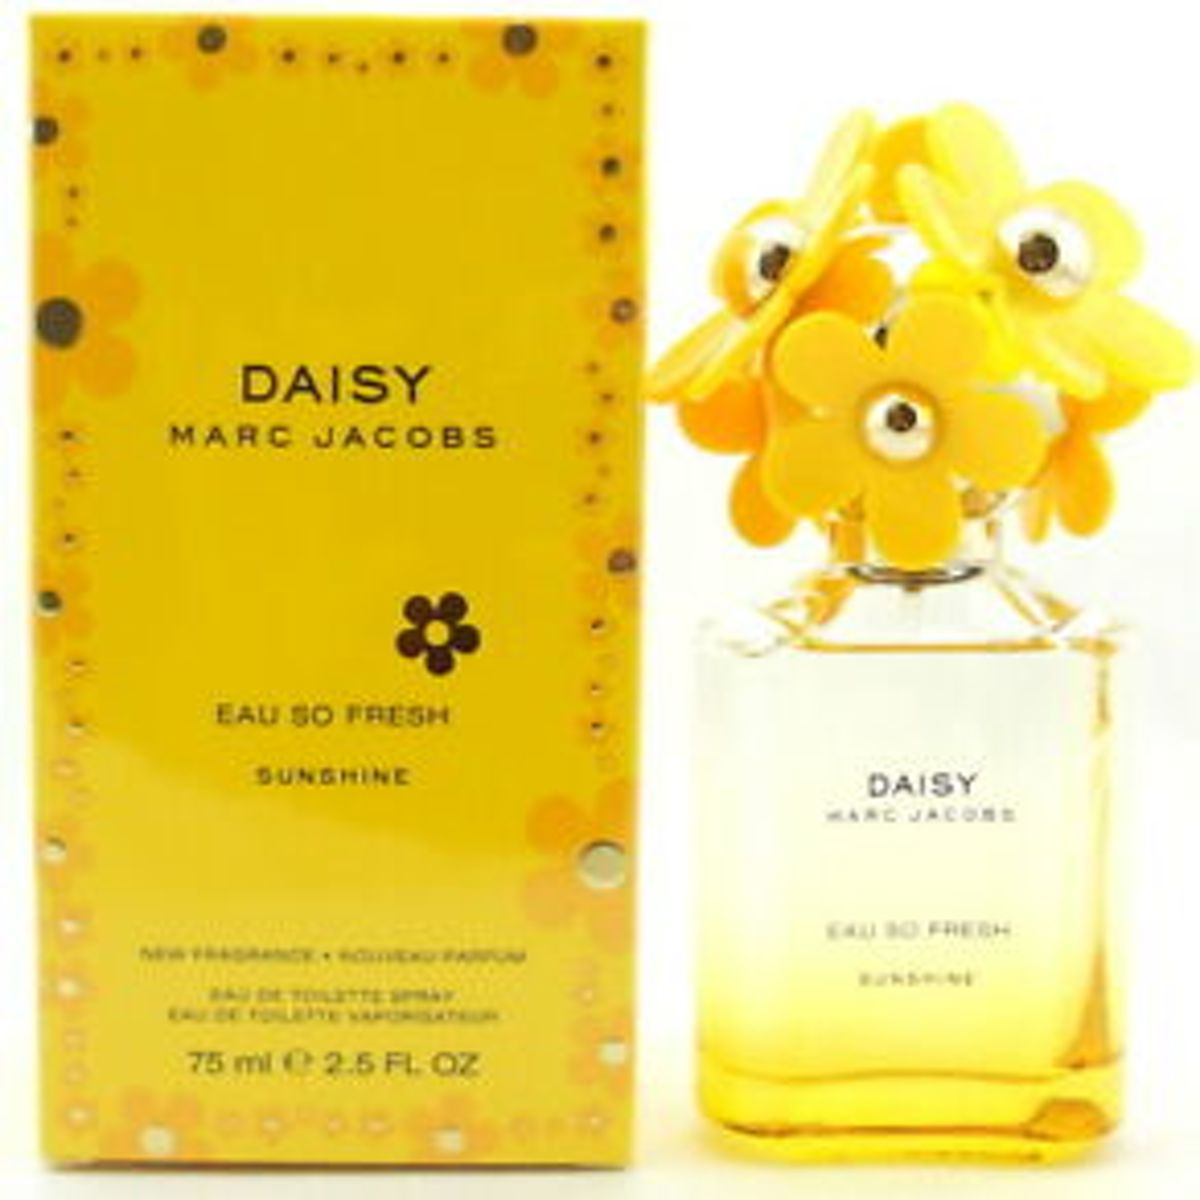 Marc Jacobs Daisy Eau So Fresh Sunshine eau de toilette spray (2019) 75 ml